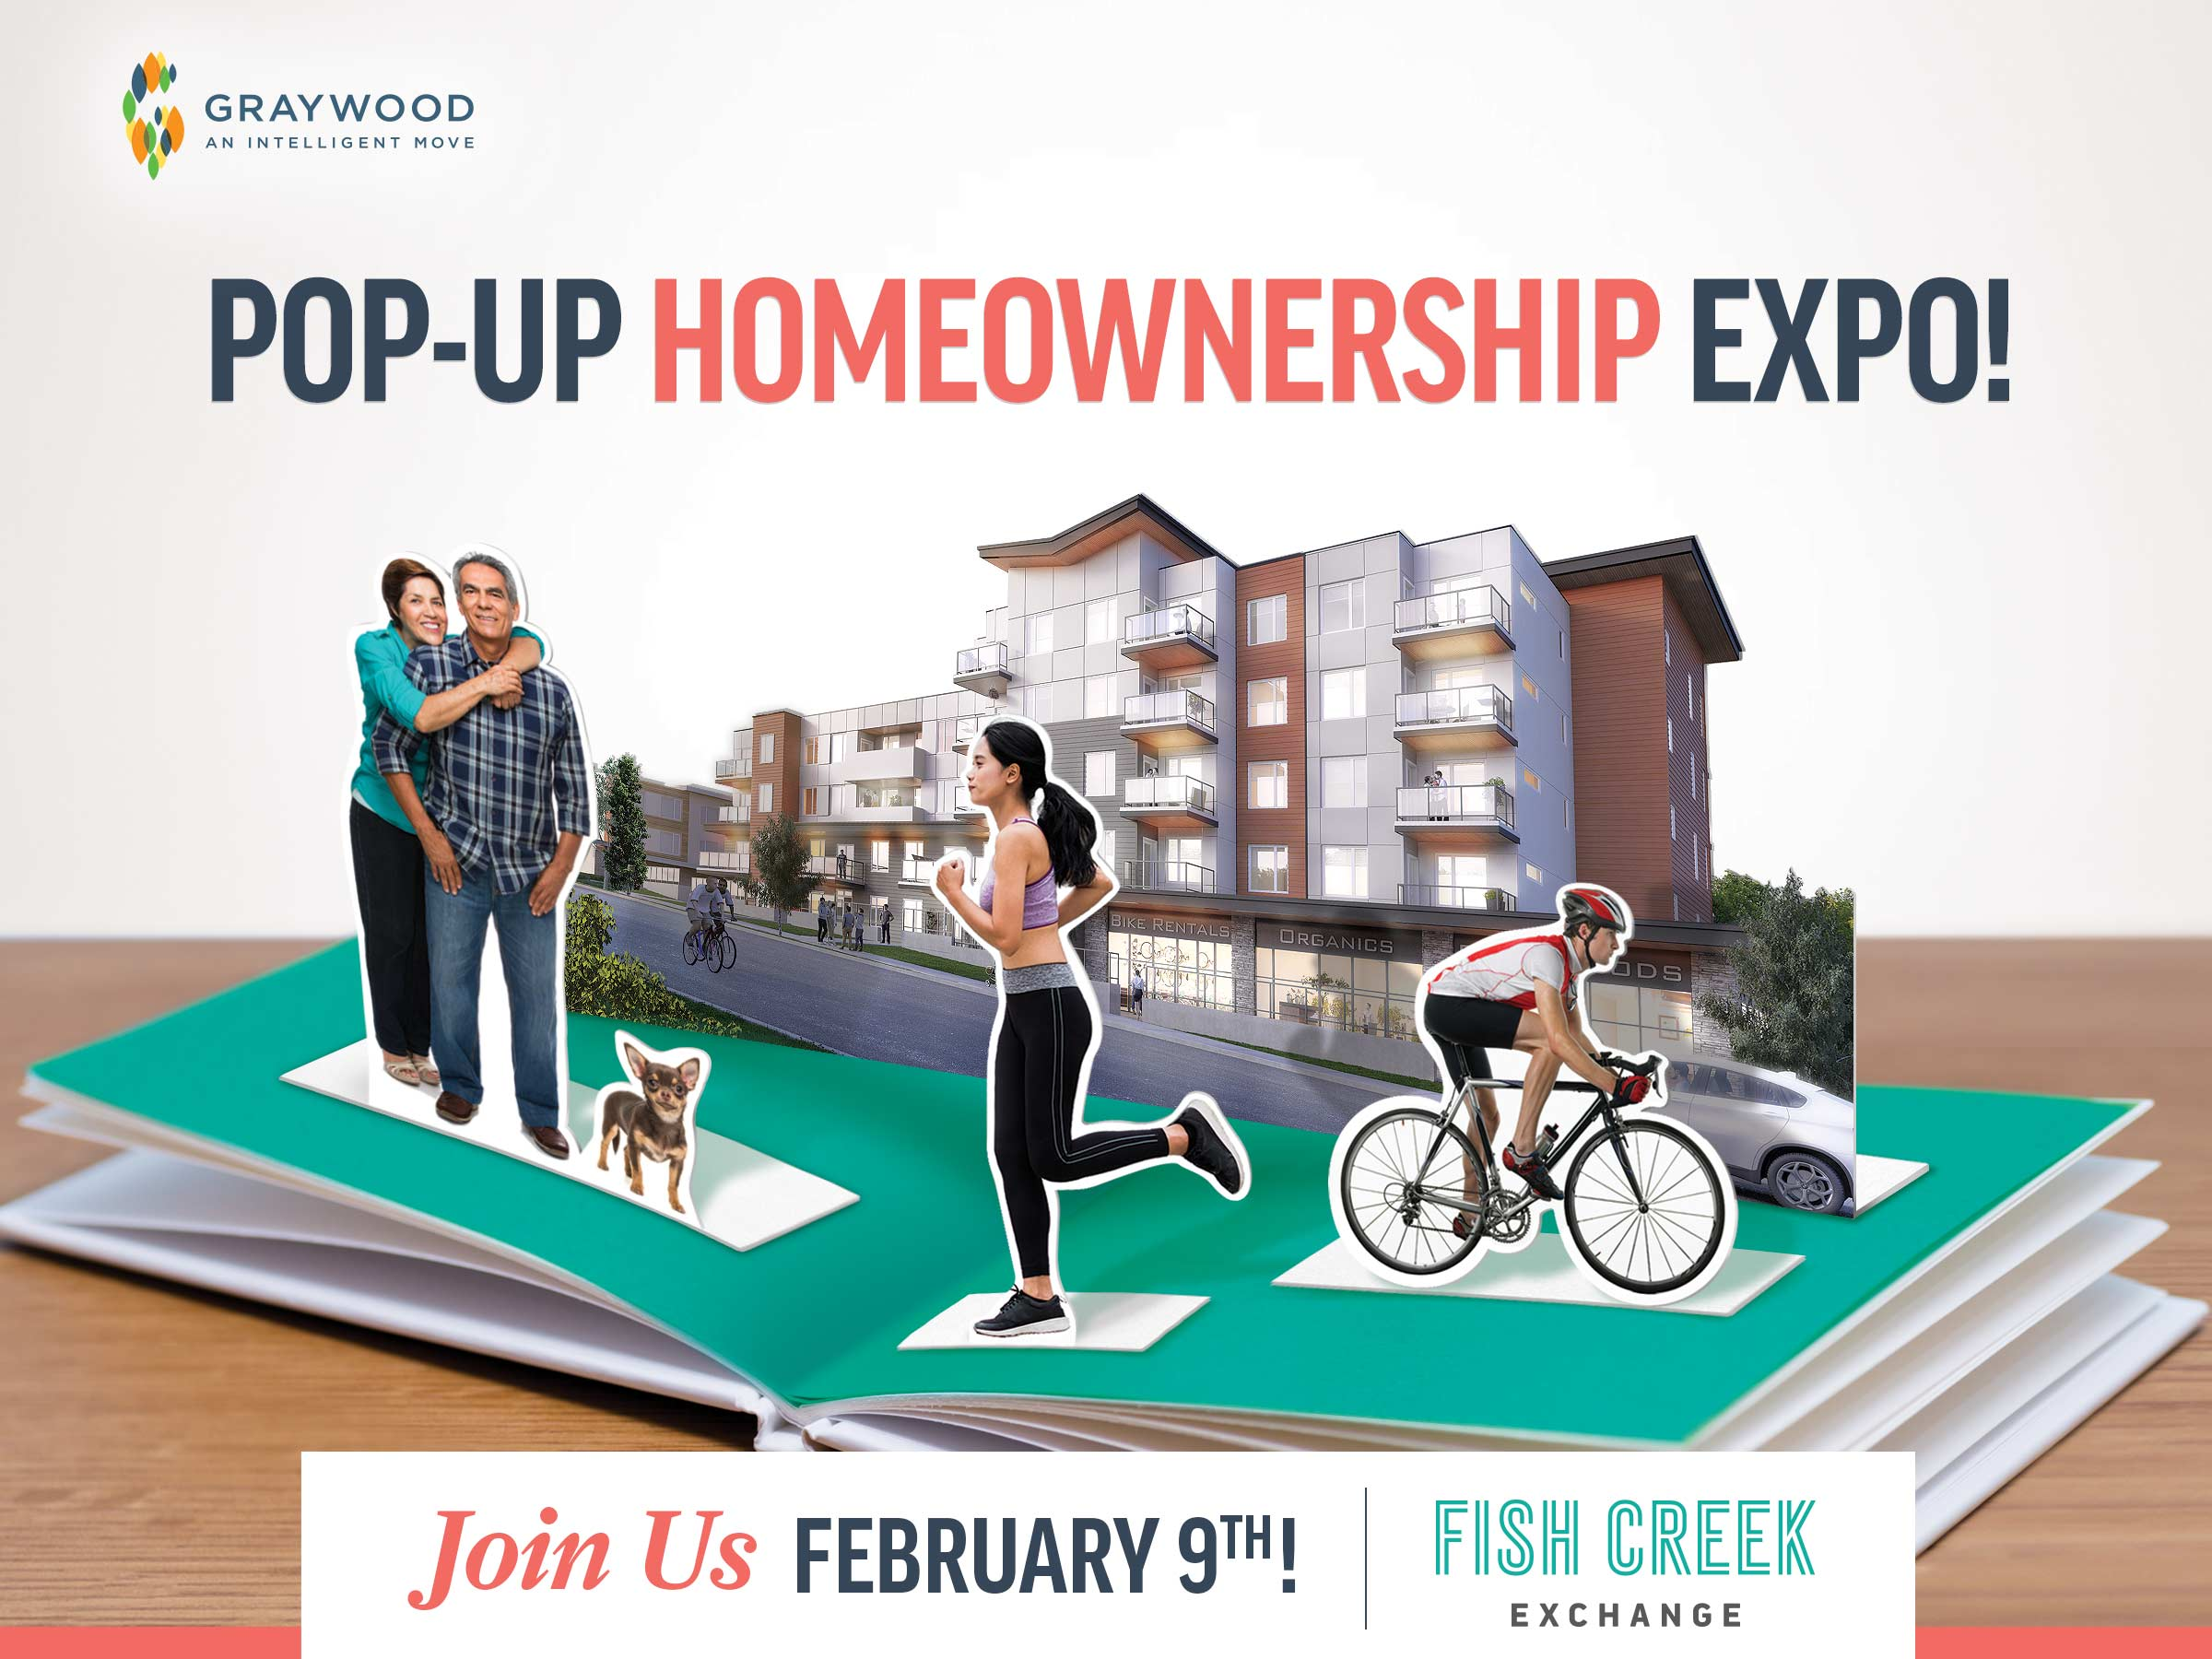 Invitation to attend a Calgary Pop-up Homeownership Expo at Fish Creek Exchange